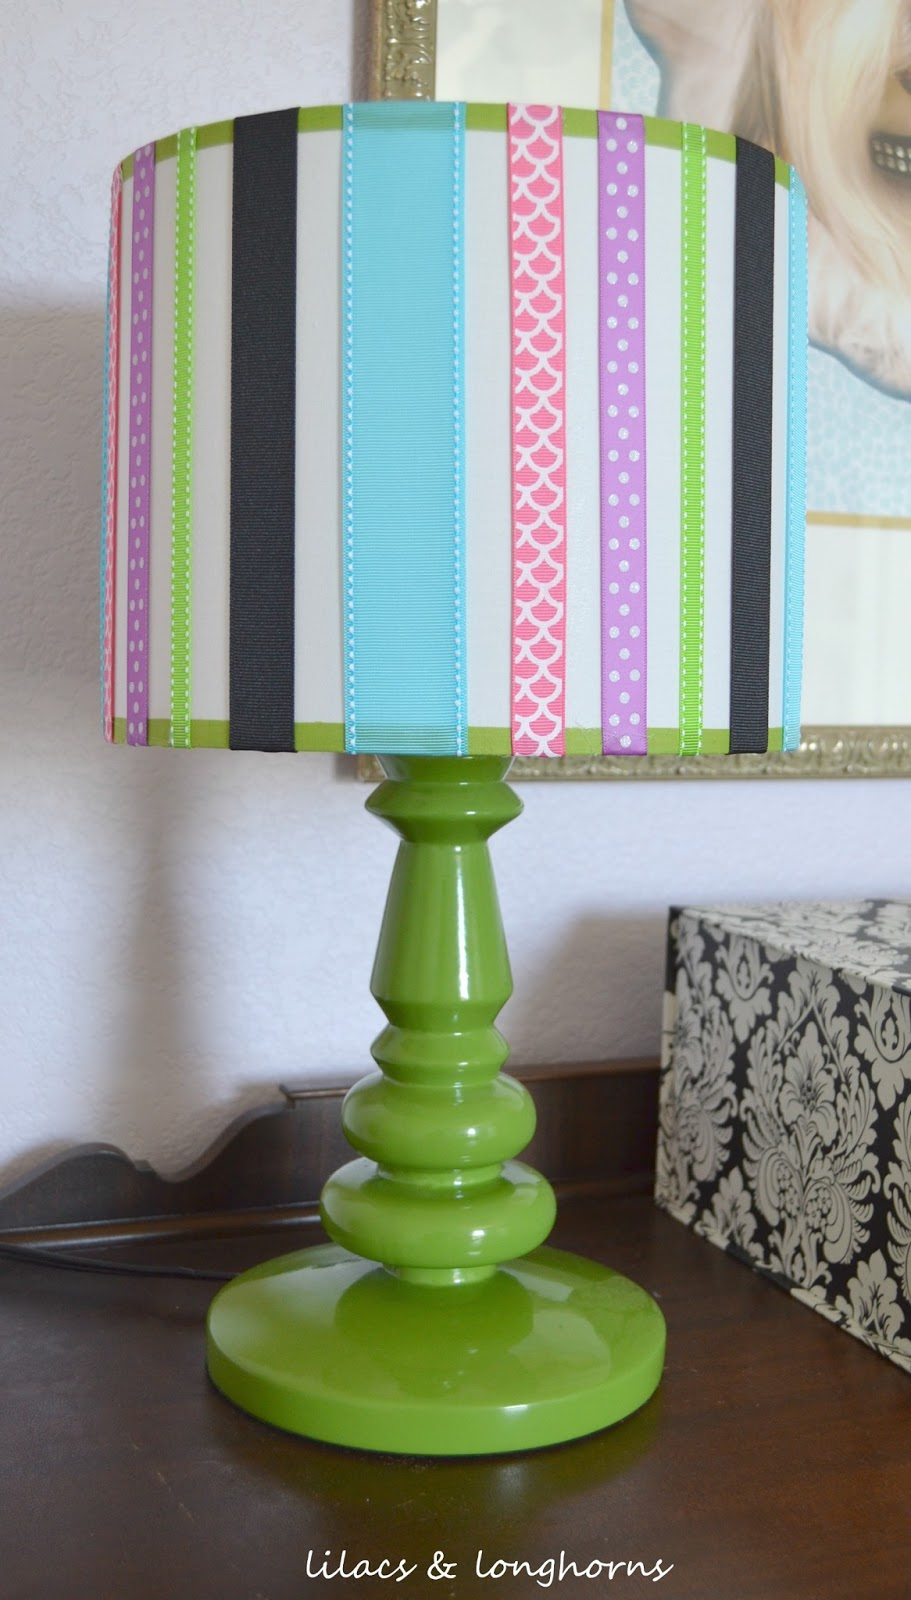 Diy ribbon lamp shade lilacs and longhornslilacs and longhorns - Diy lamp shade ...